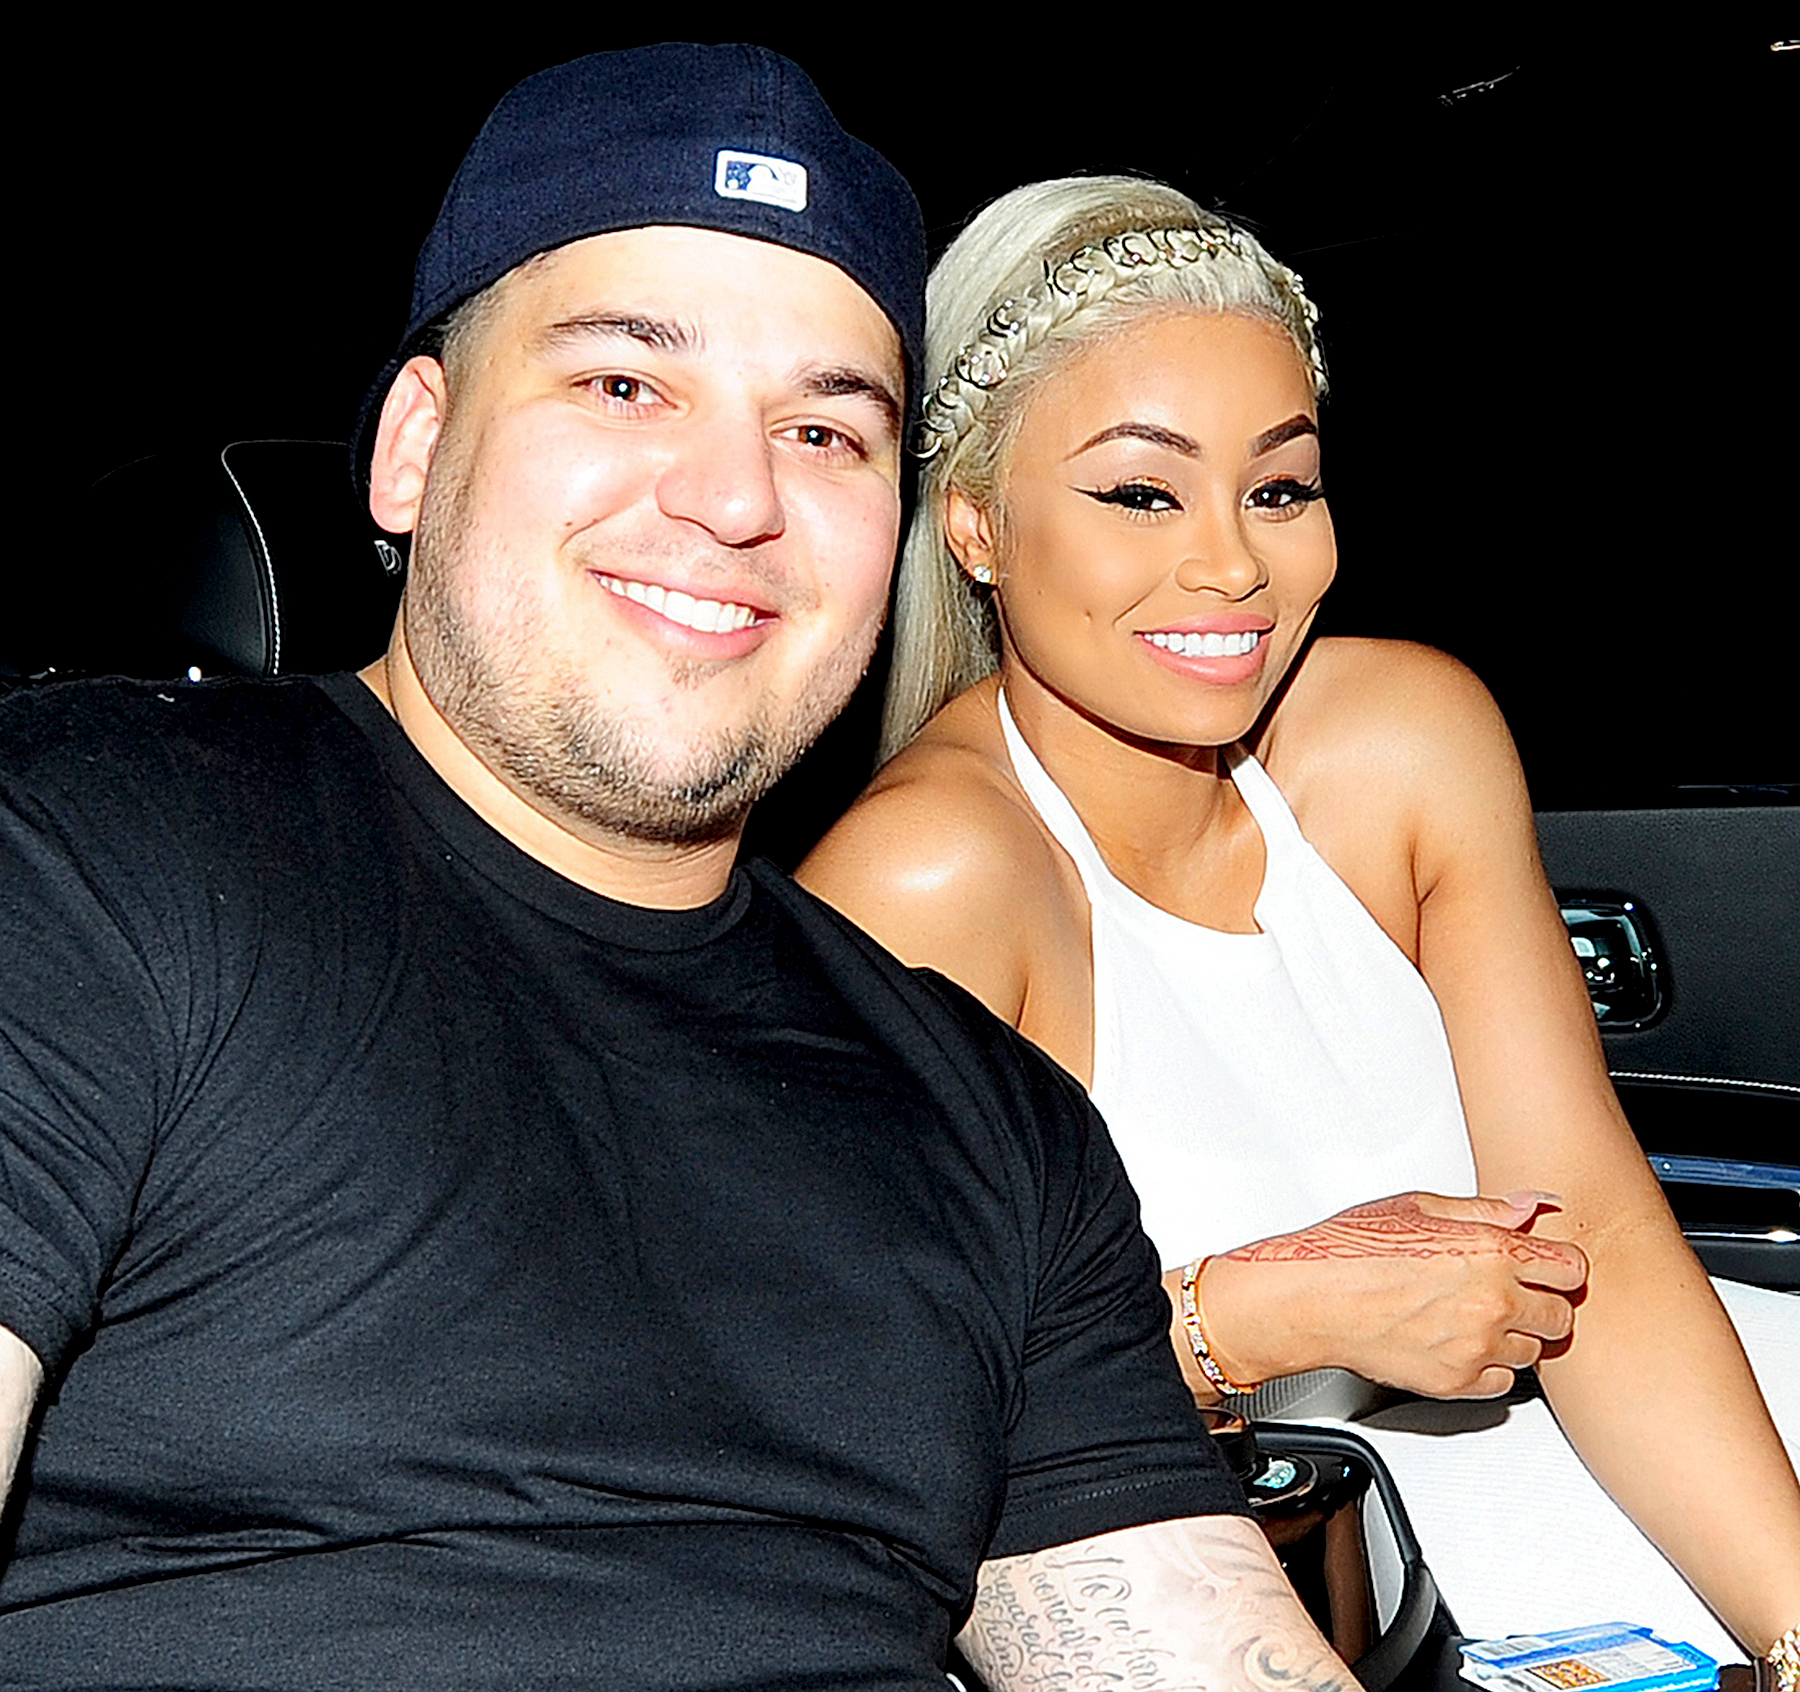 Blac Chyna attends her 28th birthday party at a Miami Strip Club G5IVE with Rob Kardashian and her friends on May 11, 2016.